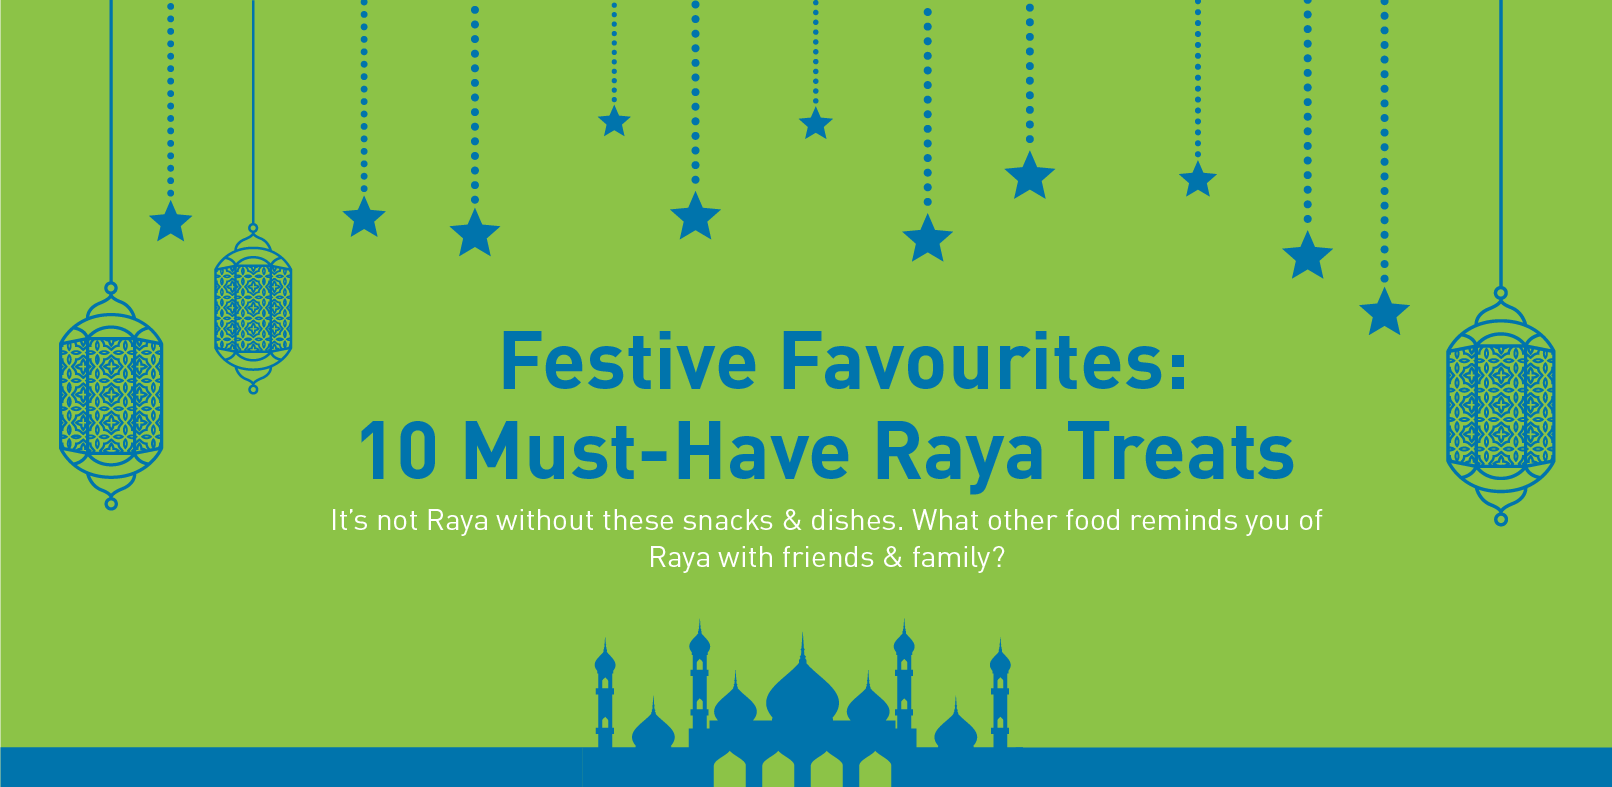 Festive Favourites: 10 Must-Have Raya Treats